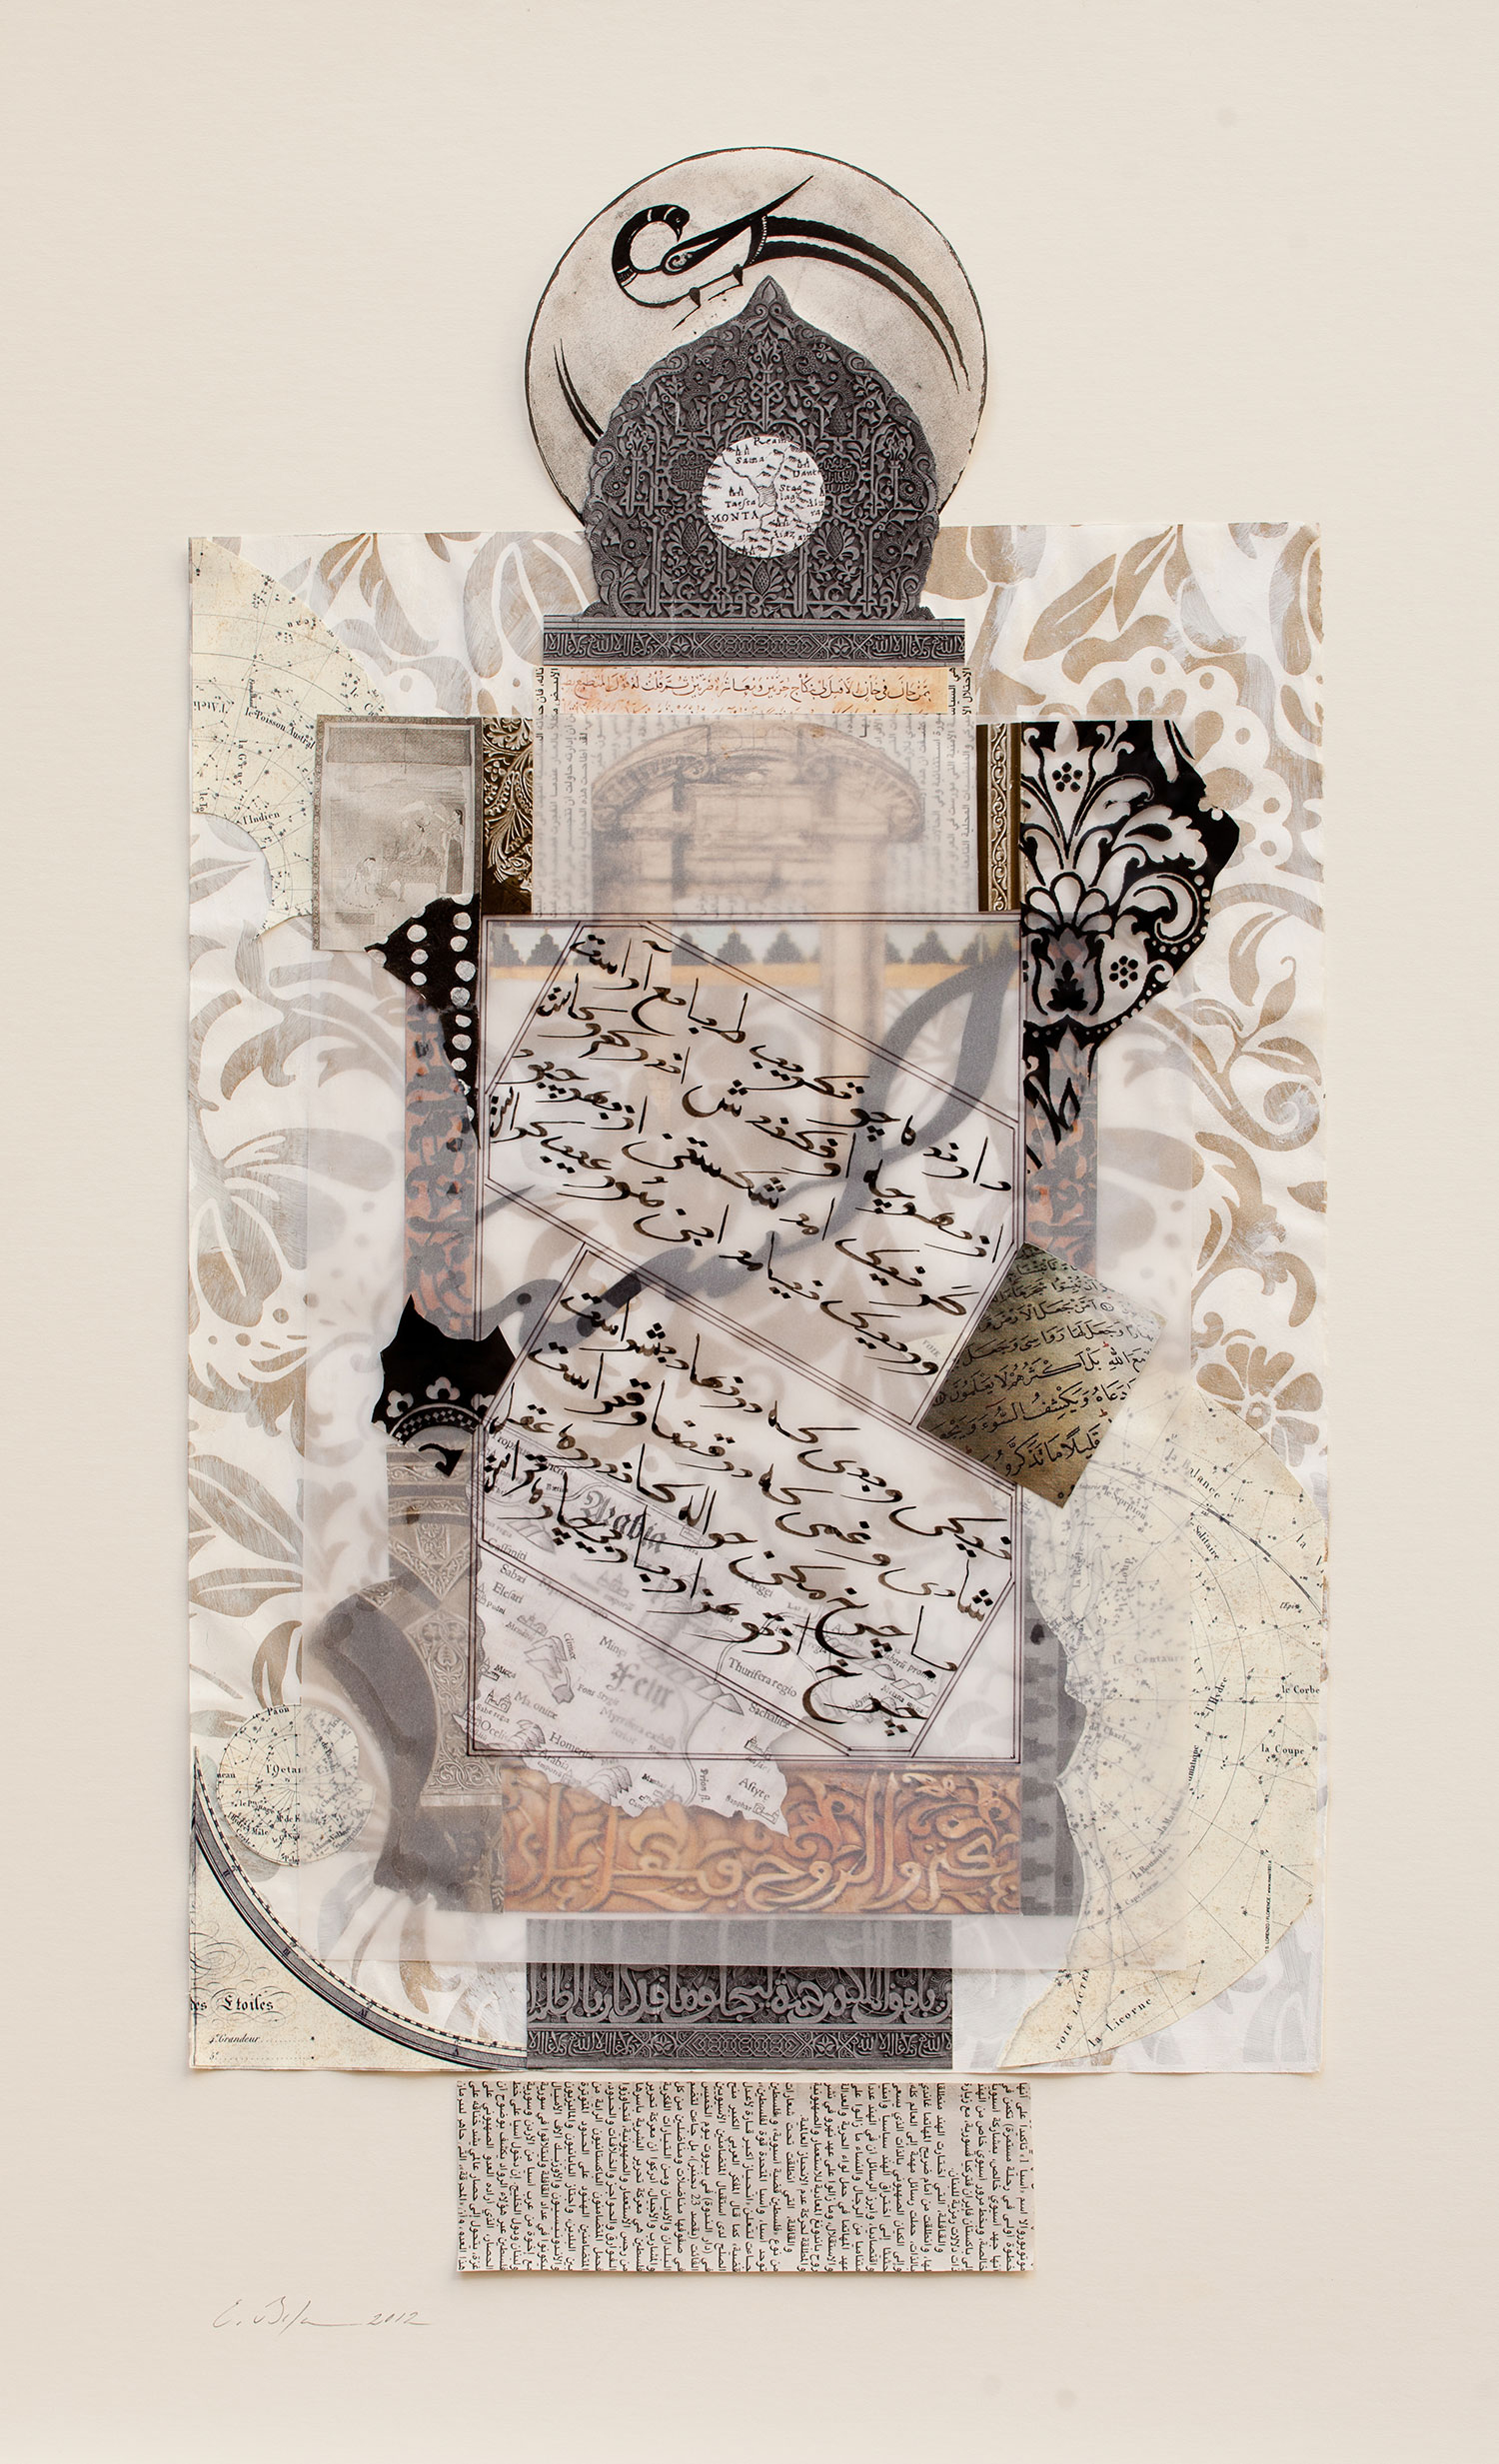 Monaa   Private collection New York, U.S.A.  Paper, stucco, Chinese ink and pencil on paper 41 x 67 cm 2012